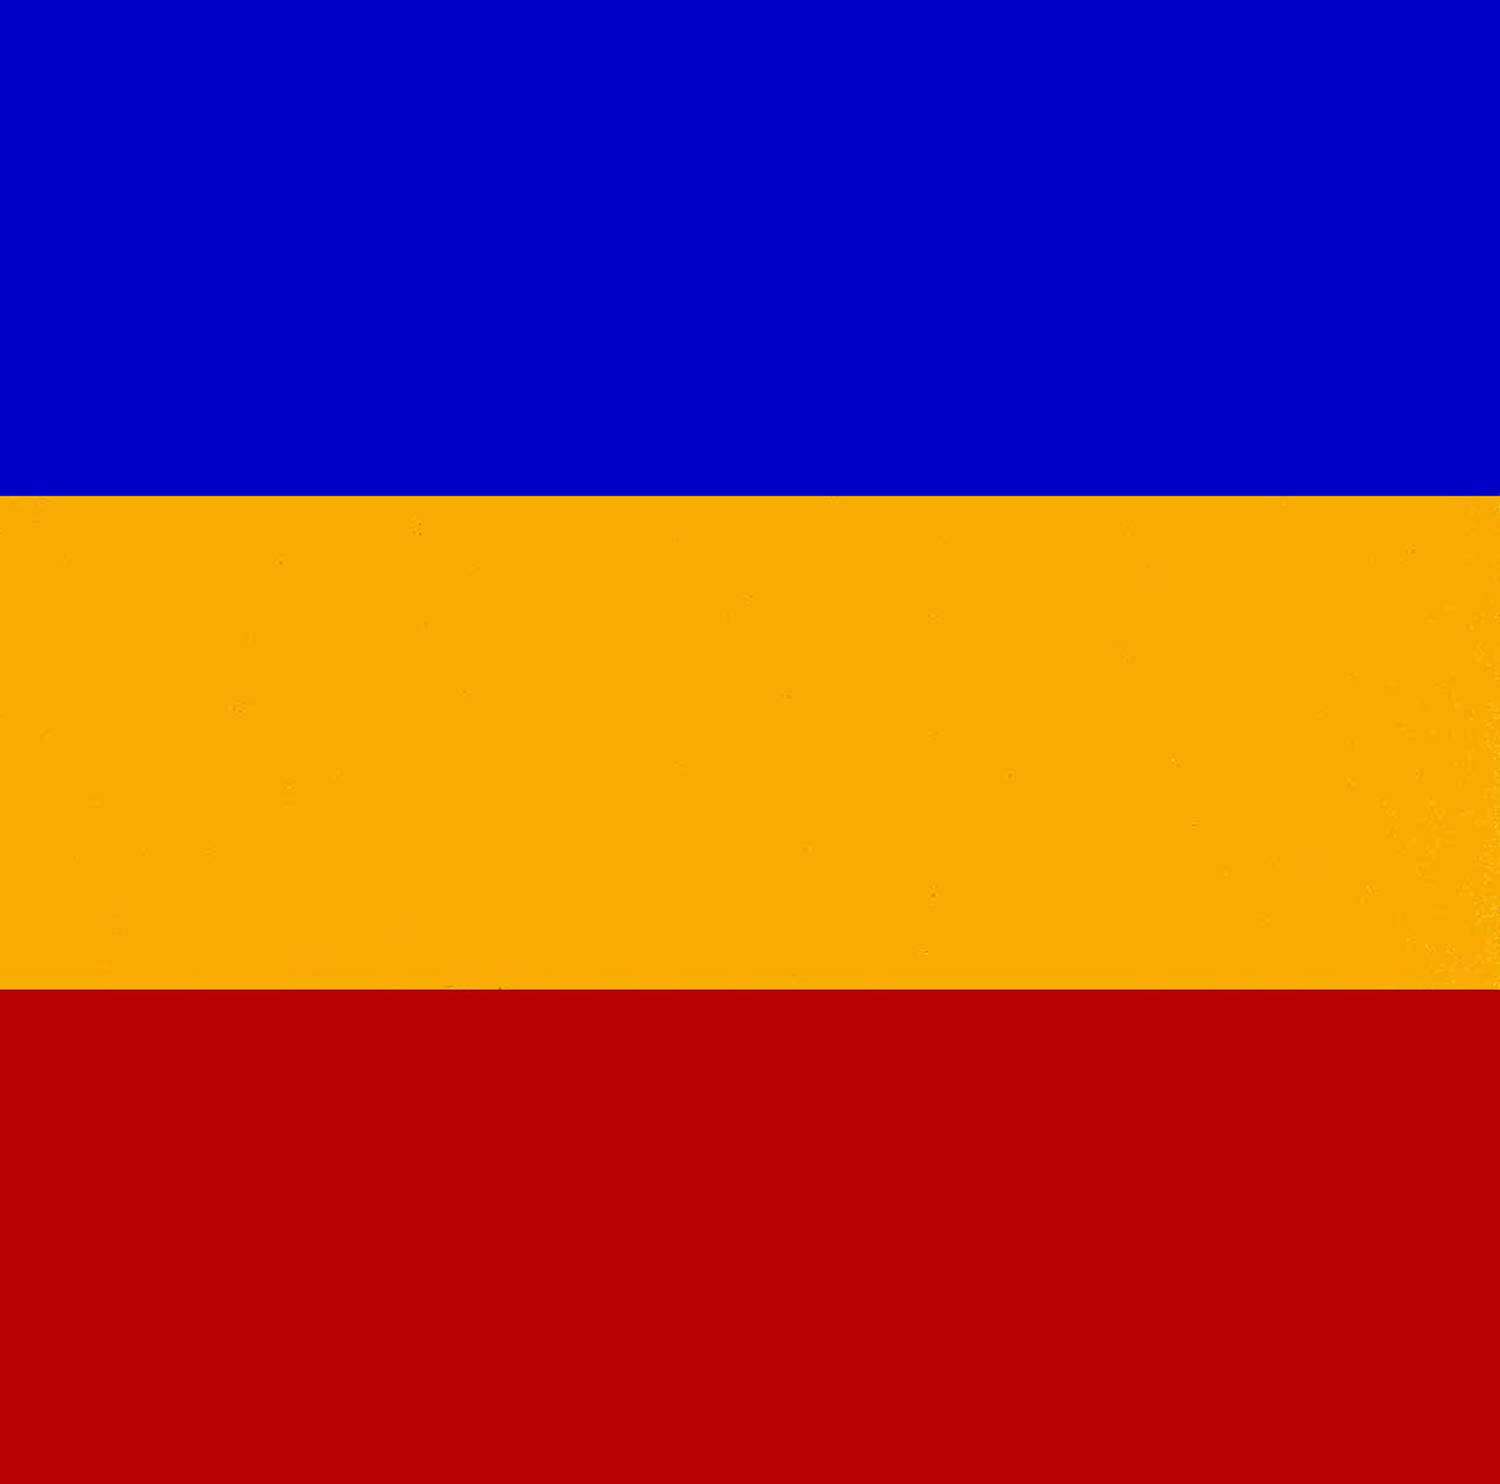 Red yellow and blue flag